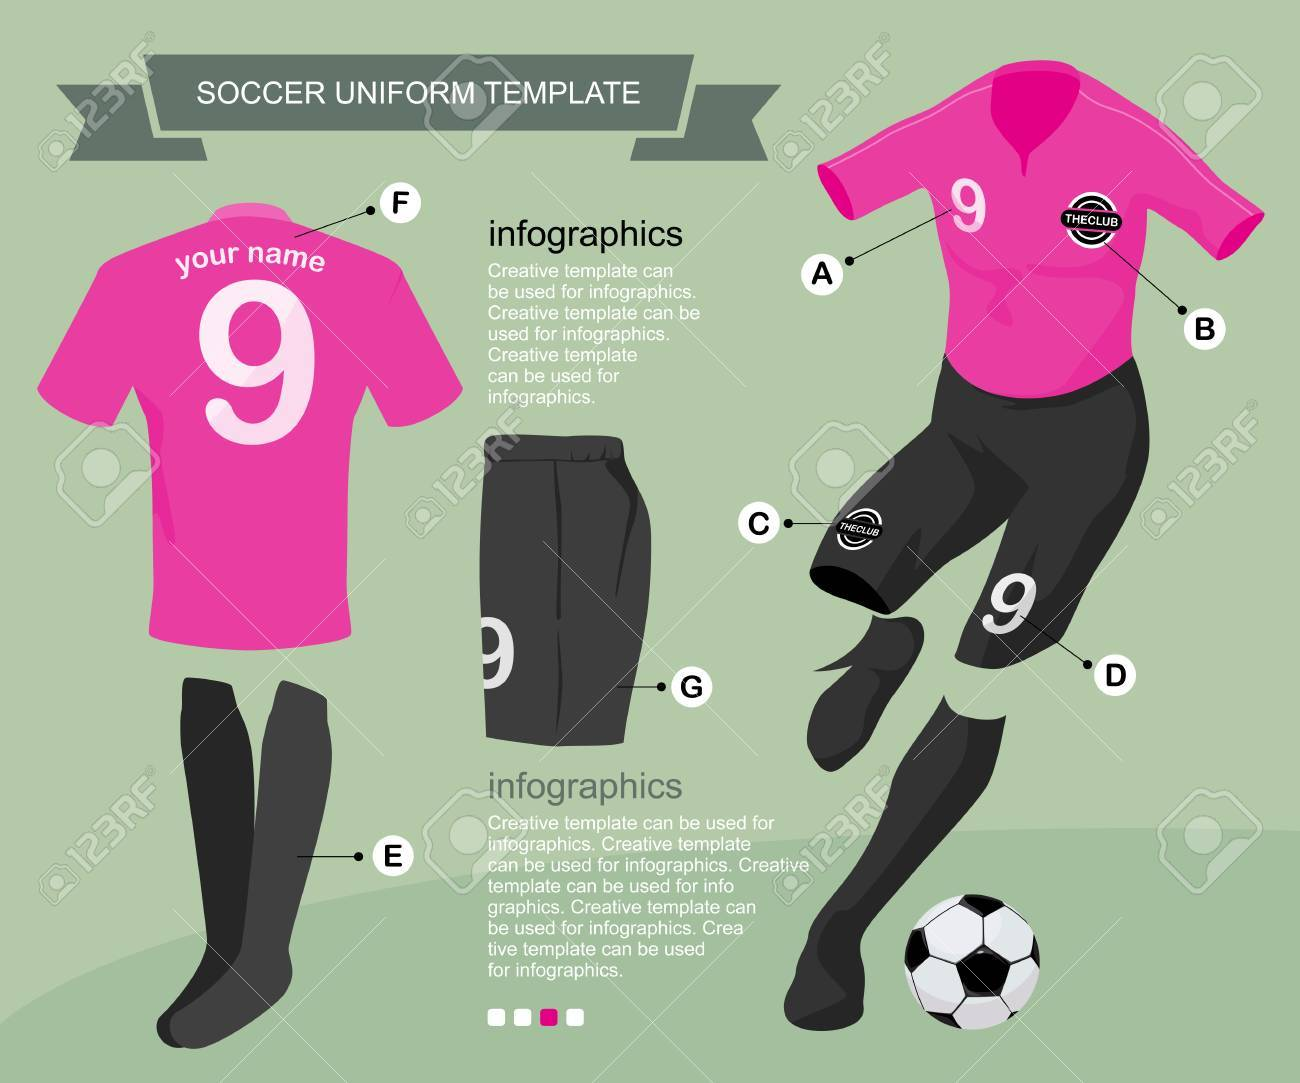 Soccer Uniform Template For Your Football Club Illustration By Vector Design Stock